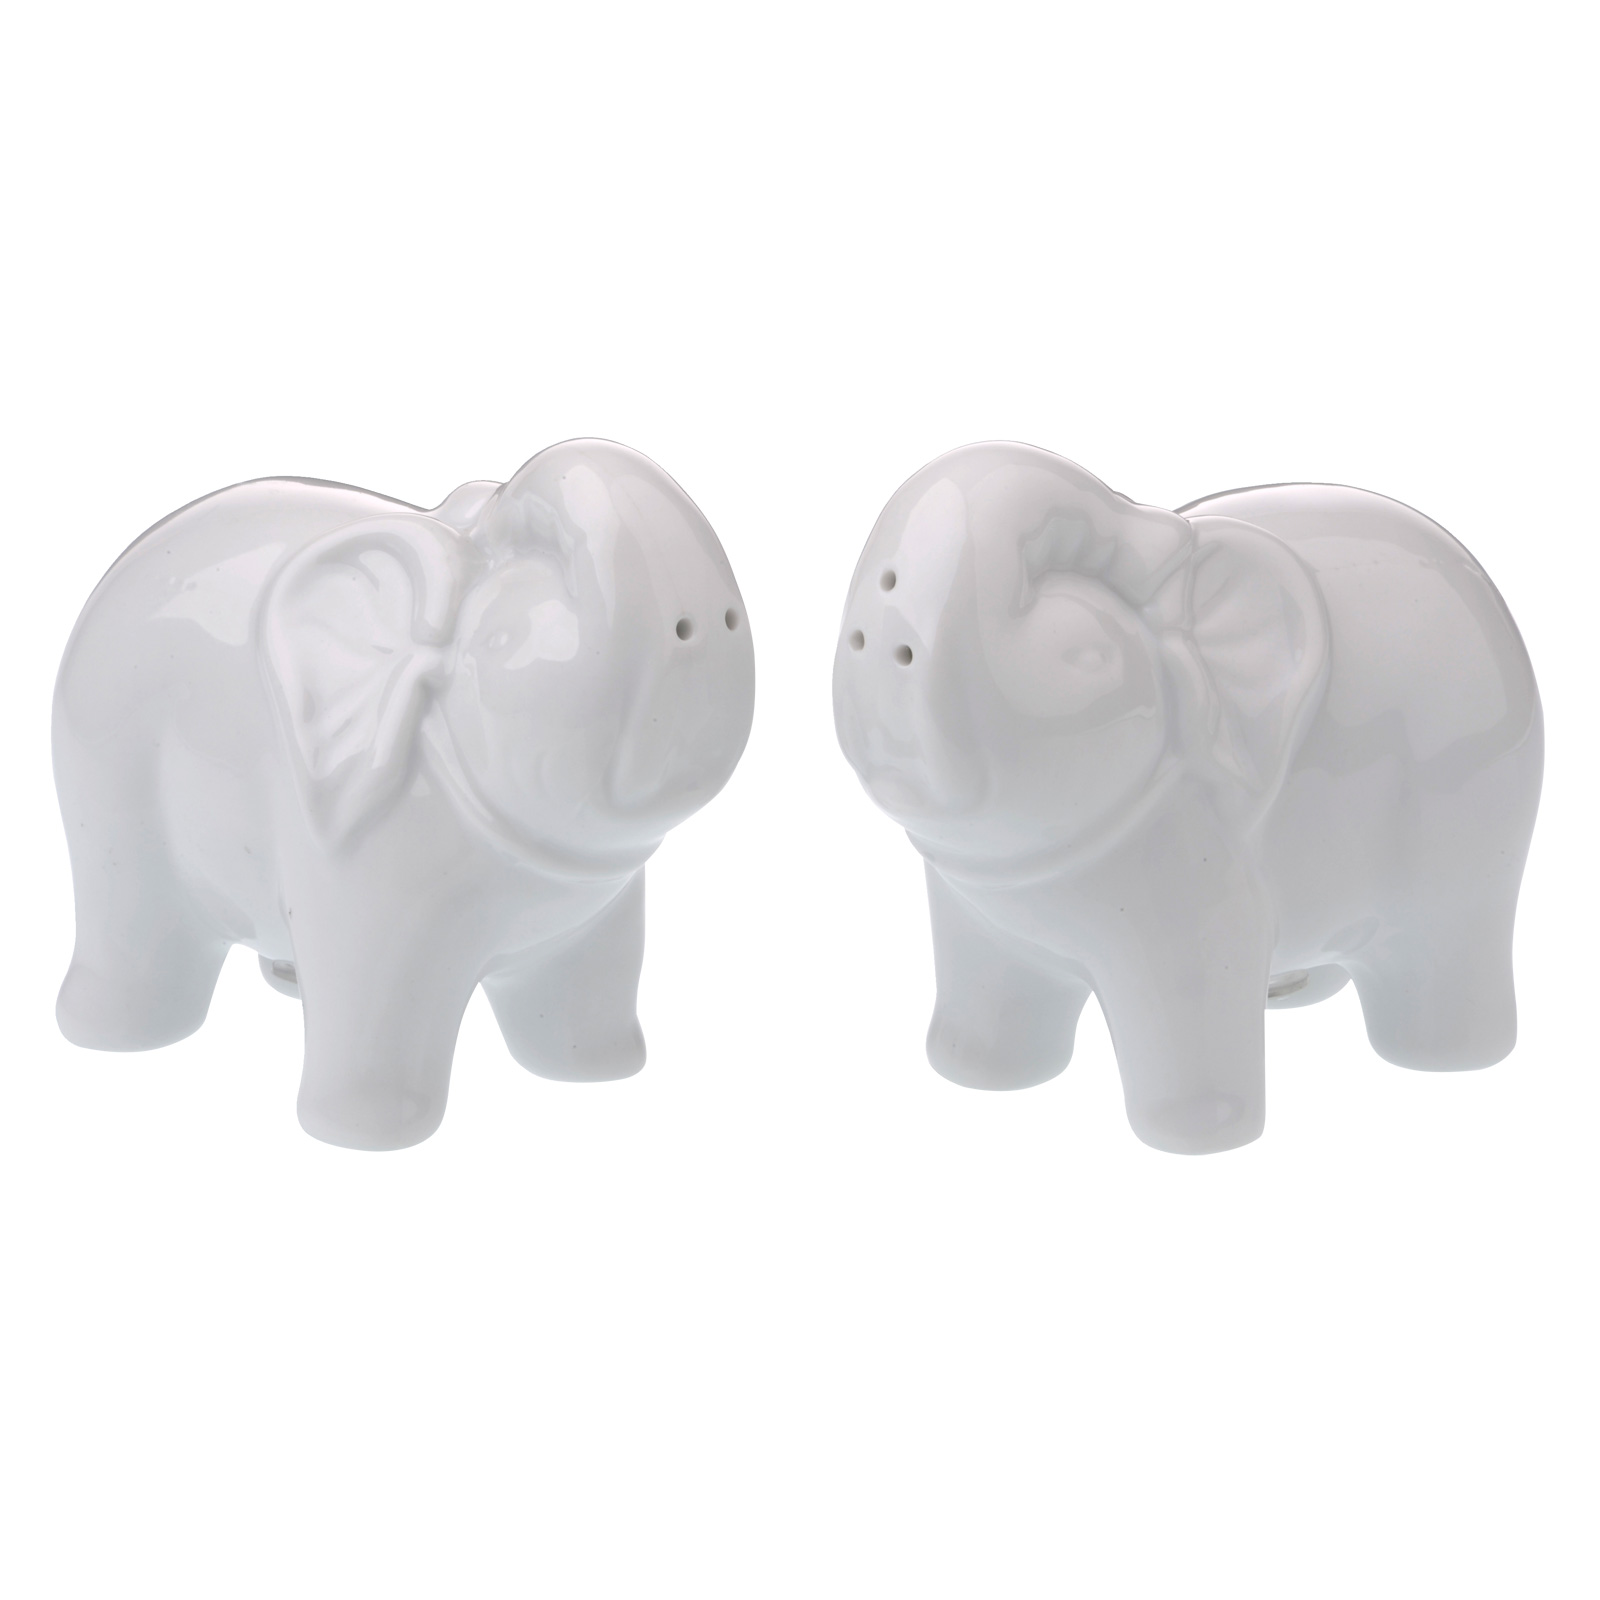 Elephant Salt & Pepper Shakers by BIA